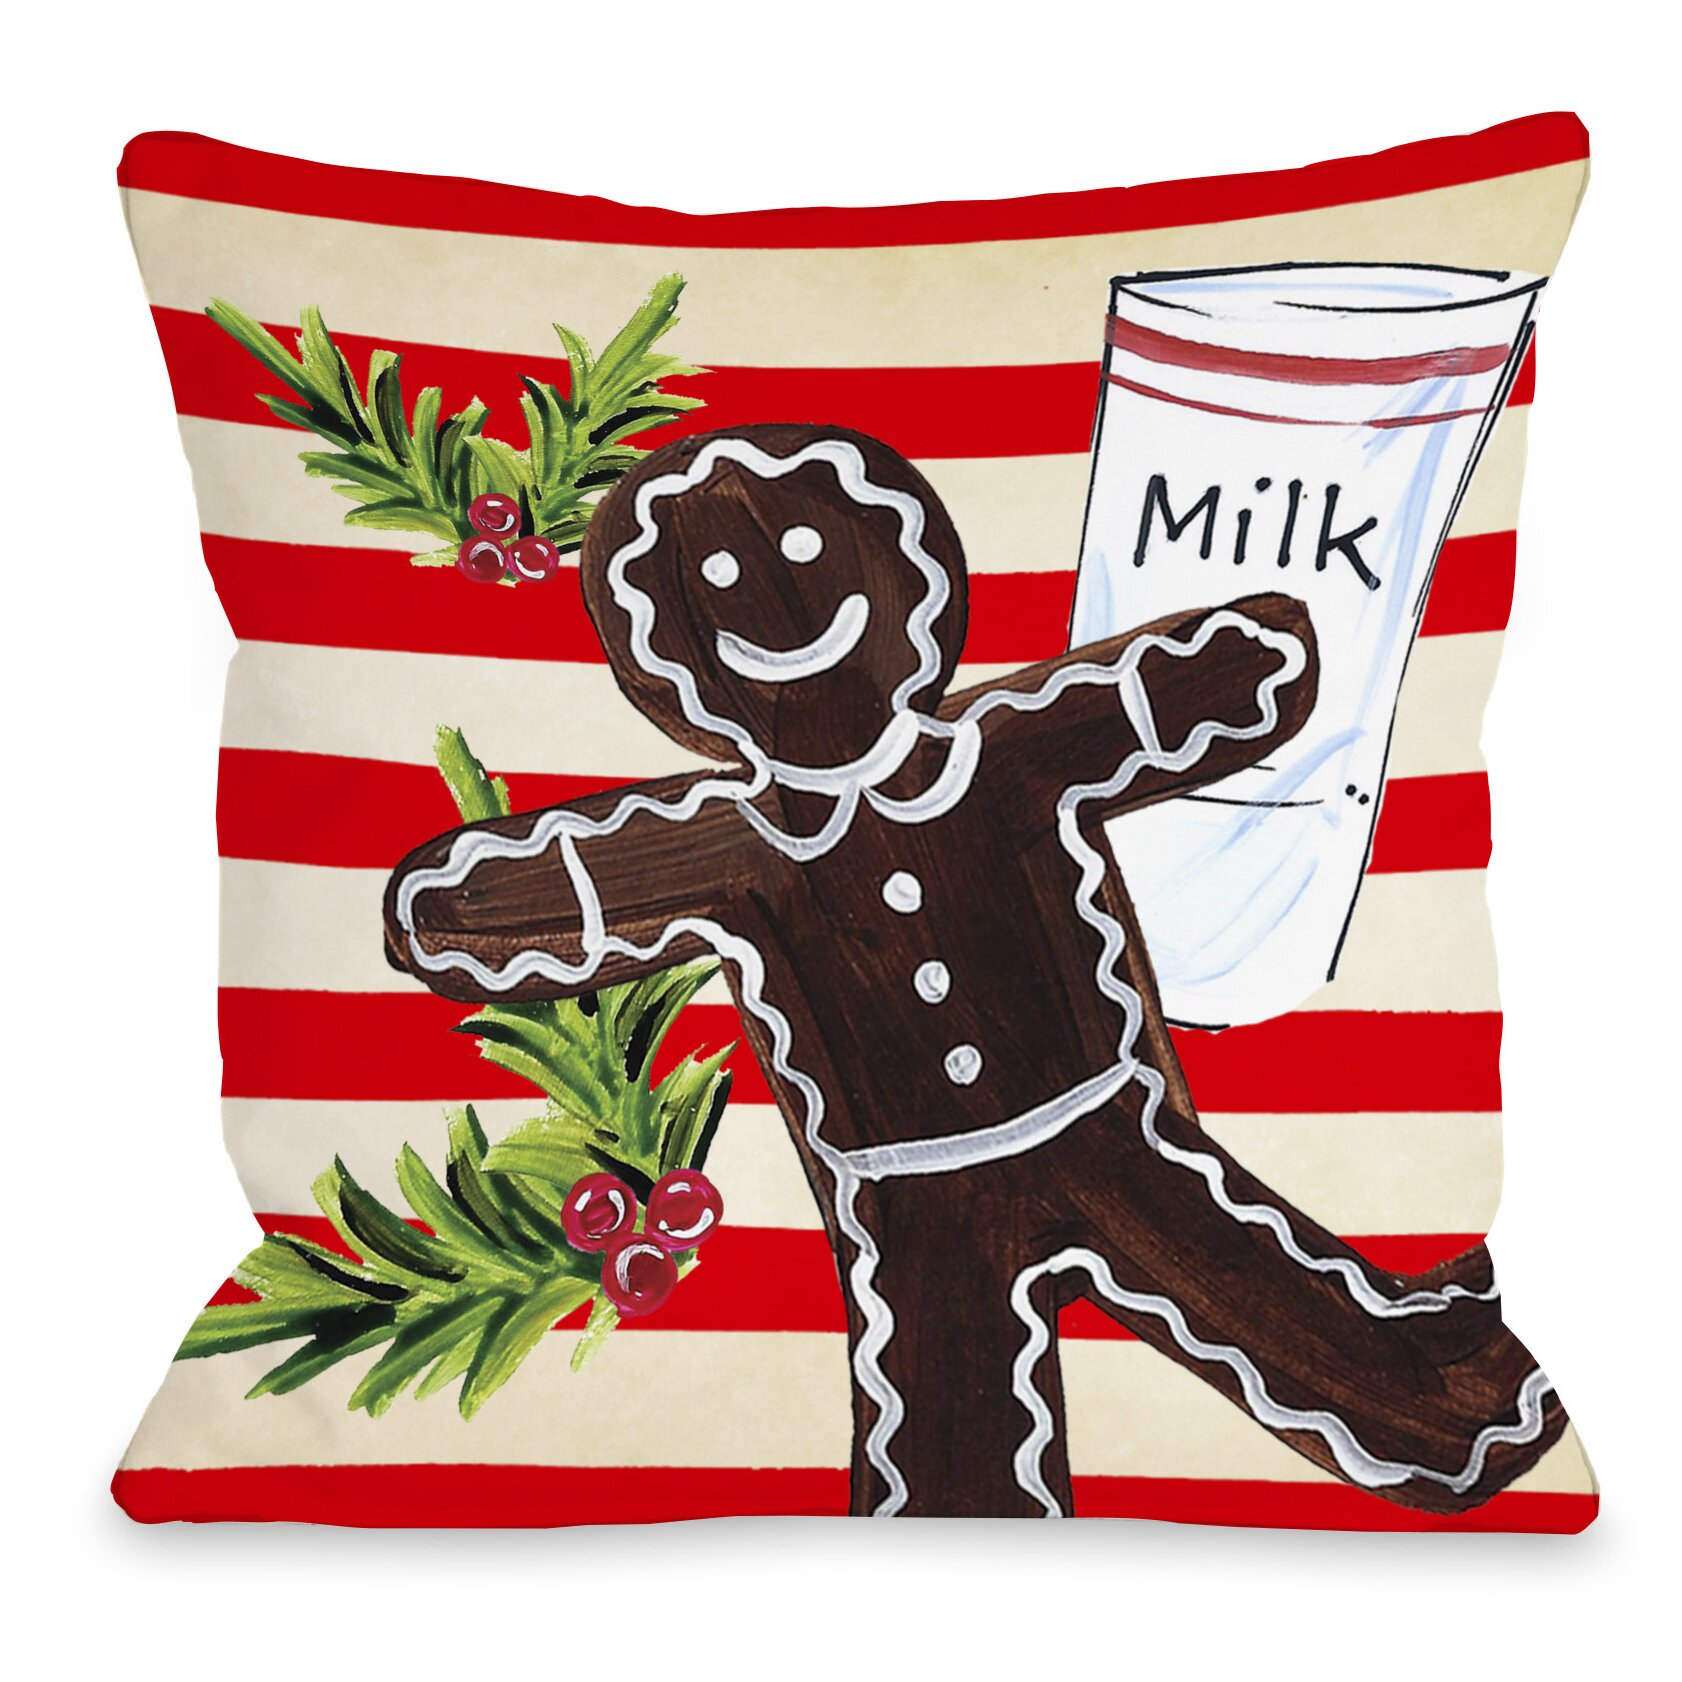 Gingerbread Decorative Pillows : One Bella Casa Gingerbread Cookie and Milk Throw Pillow & Reviews Wayfair